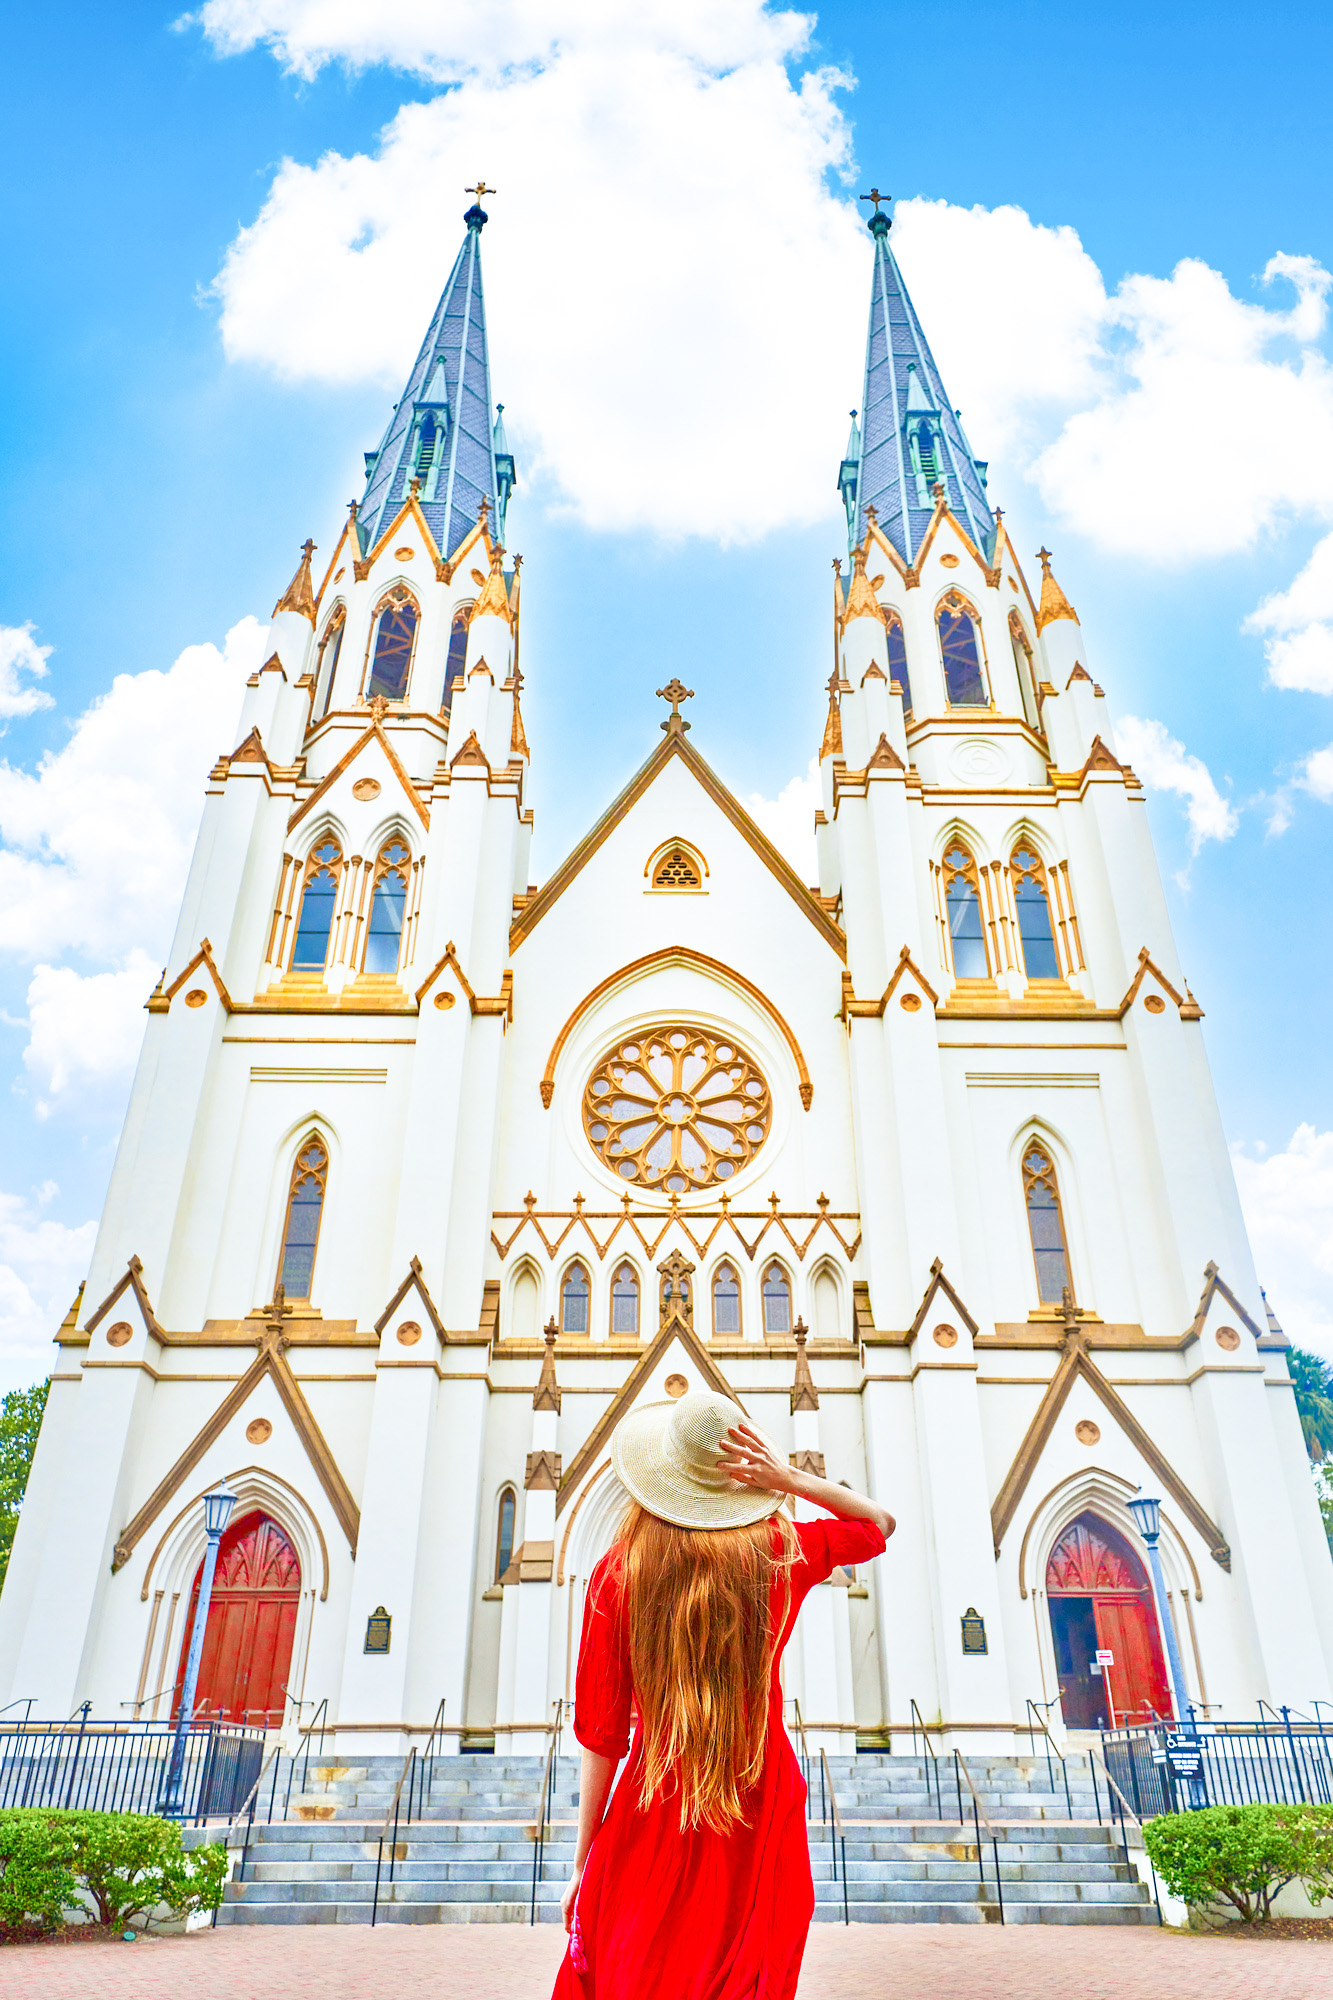 A woman standing in a bright red dress with her long hair down and wearing a cream colored sun hat looking up at the Cathedral Basilica of St. John The Baptist. The Cathedral is very large and cream with an intricate Gothic Revival architectural design. The trimmings of the church are gold and there are two large arched doors on either side of the building that are bright red.